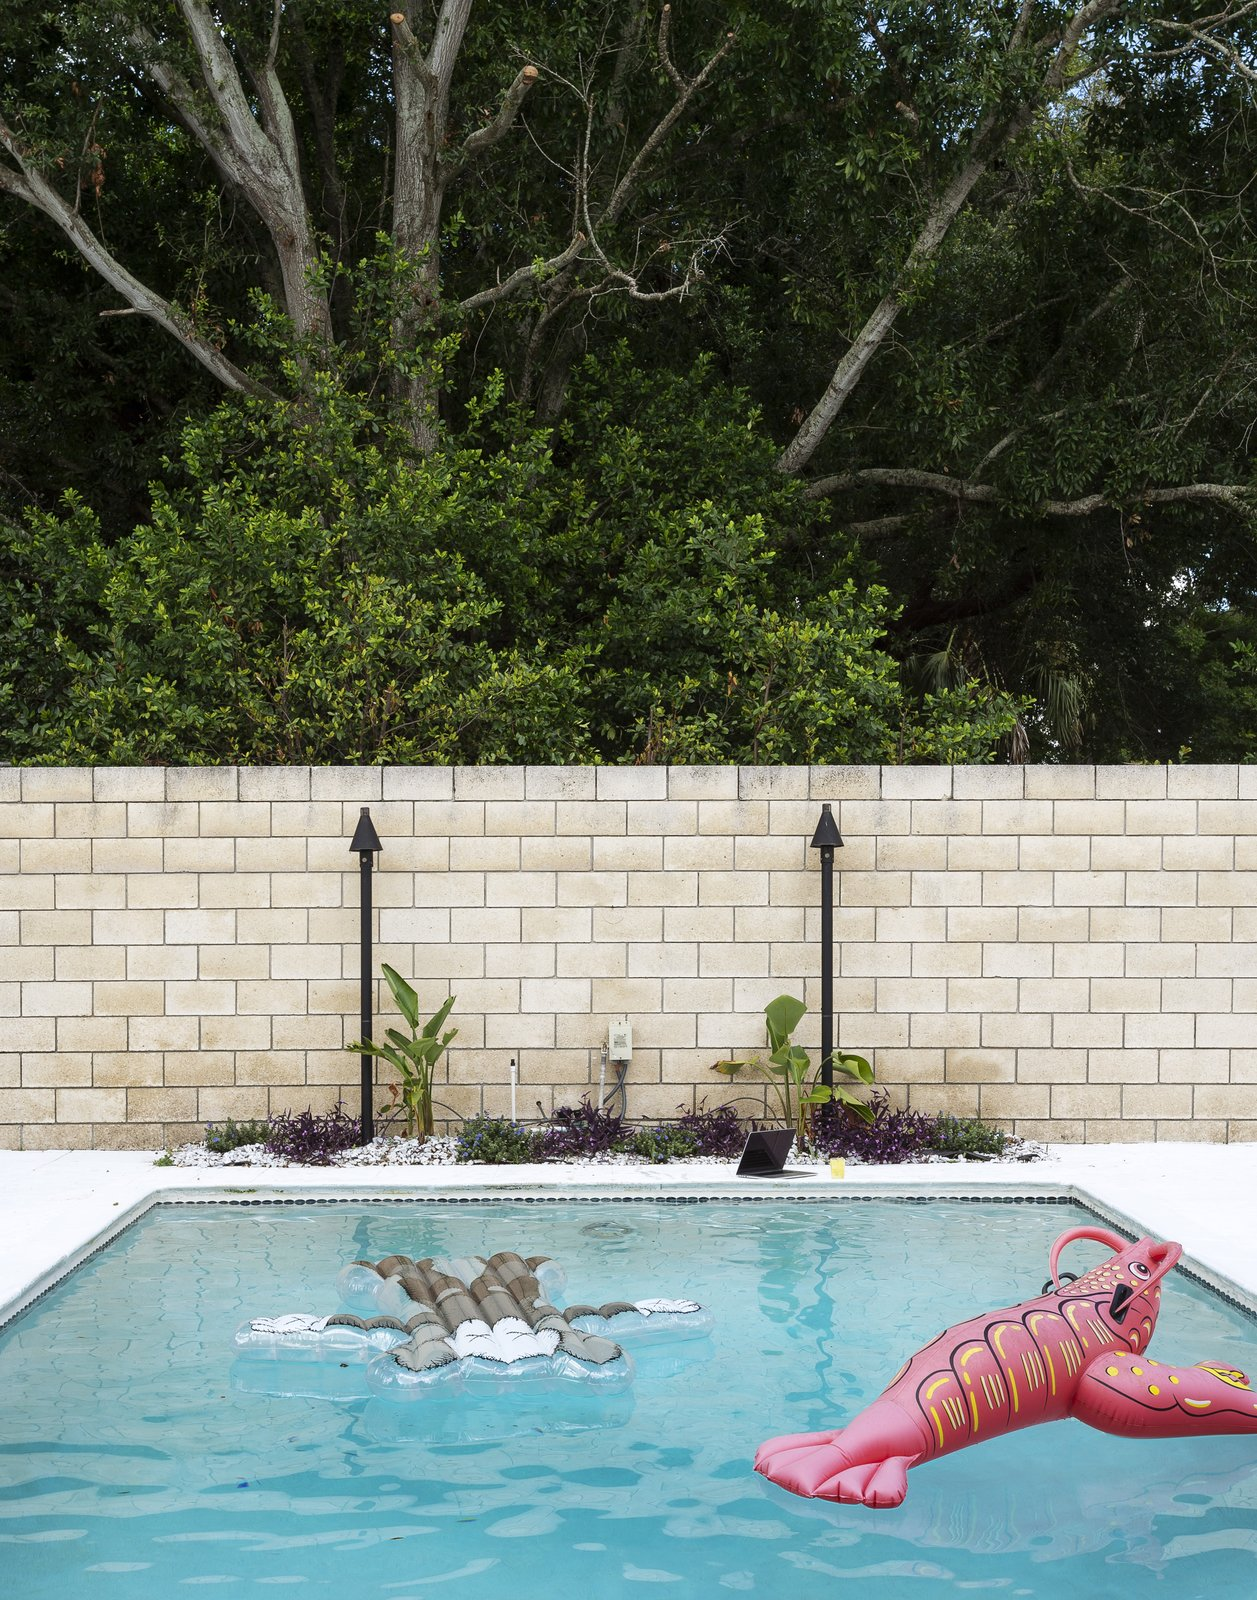 Outdoor, Back Yard, and Swimming Pools, Tubs, Shower A Jeff Koons lobster joins a float by the artist KAWS in the pool.  The Ellison House from Pop Art, Street Art, and Space-Age Furniture Collide at a Painter's Midcentury Ranch Home in Florida